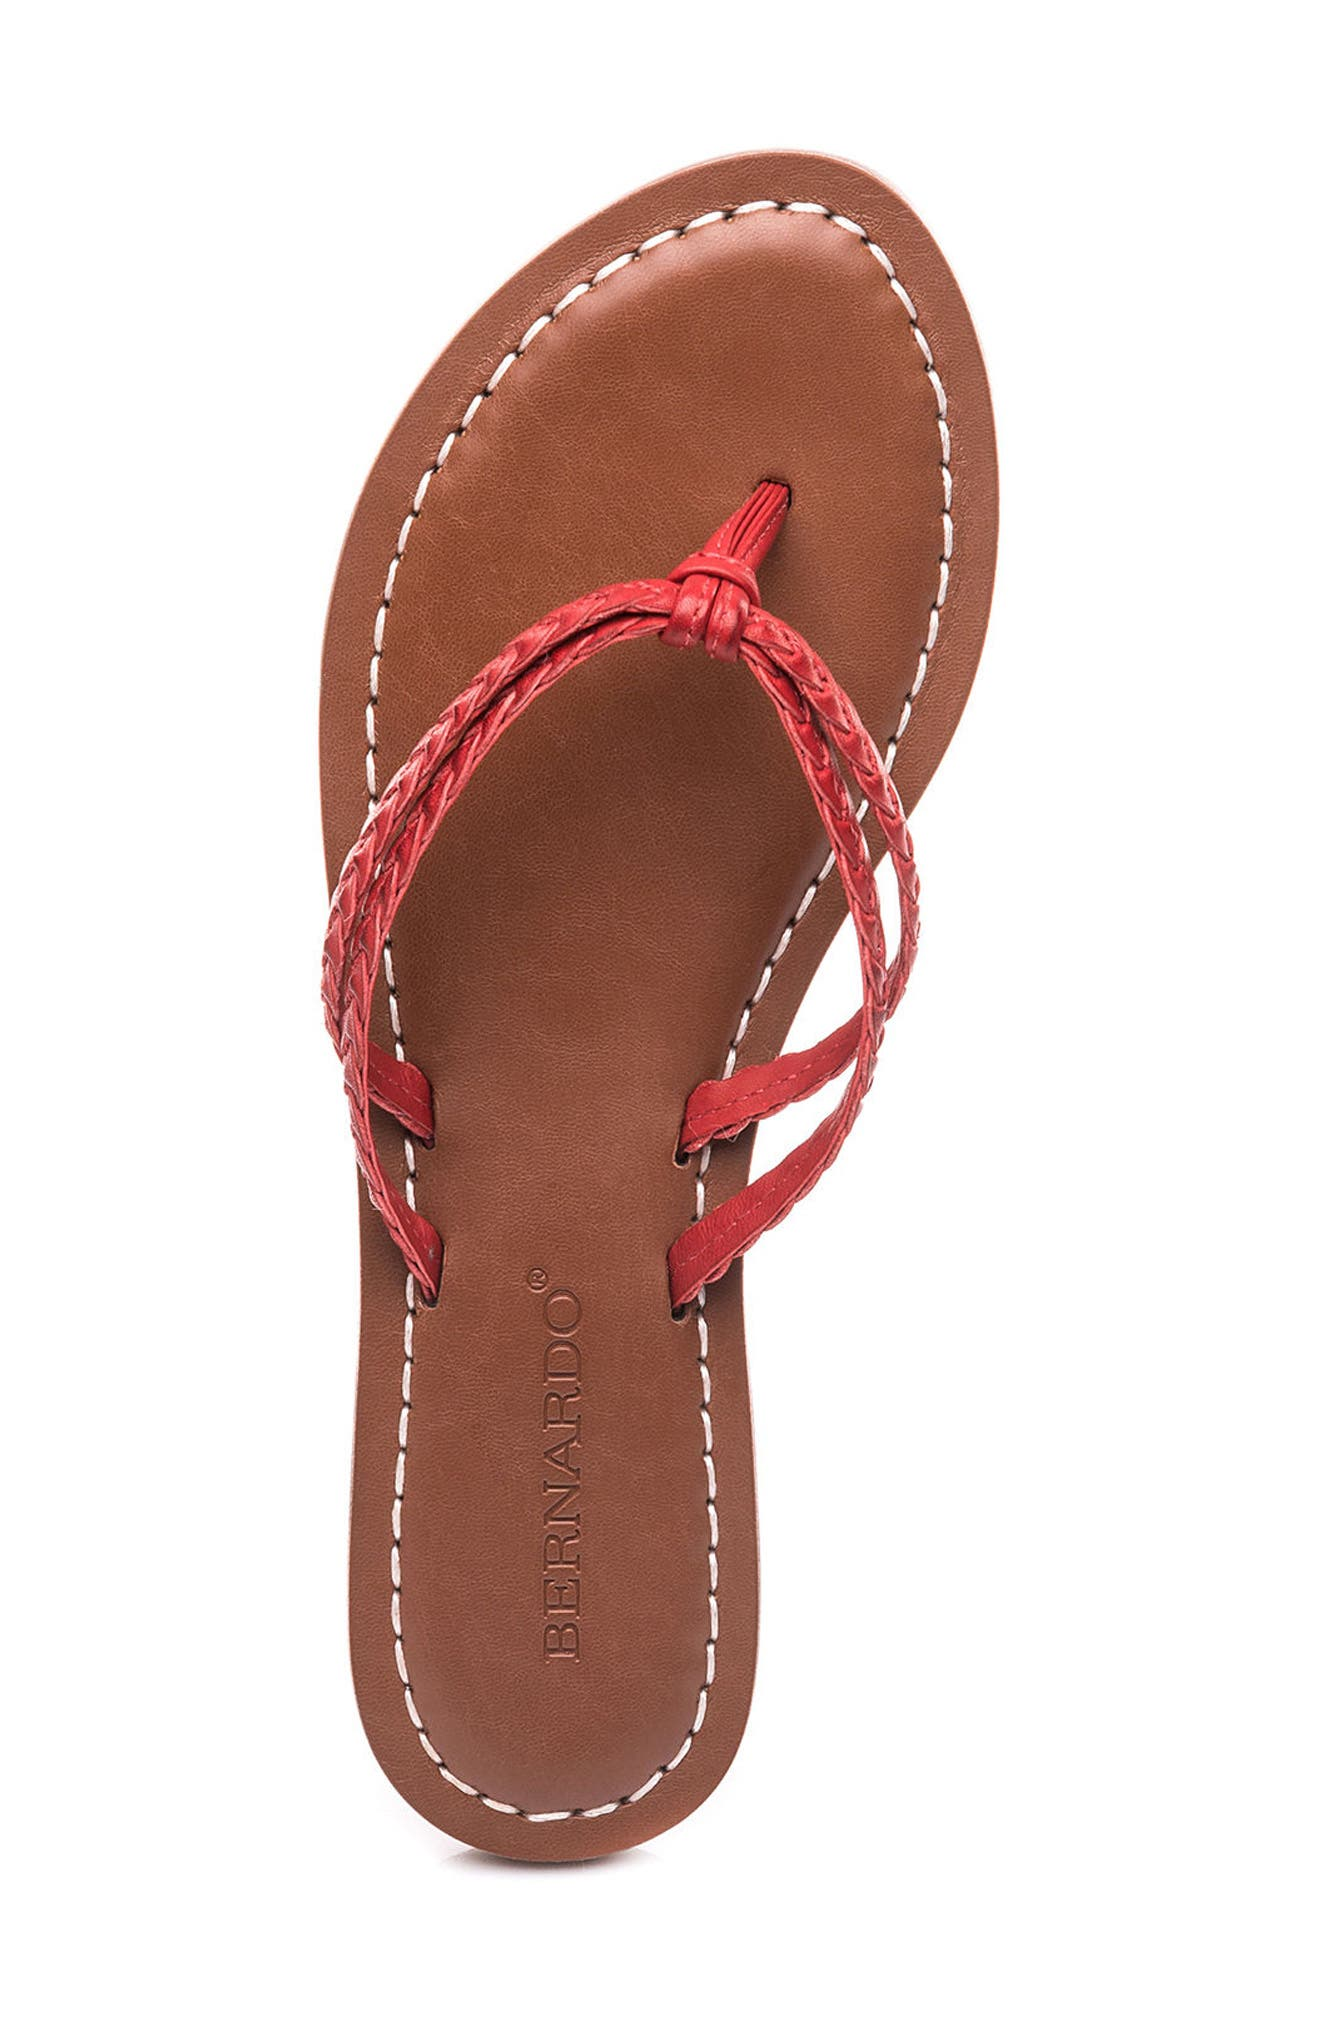 Bernardo Greta Braided Strap Sandal,                             Alternate thumbnail 32, color,